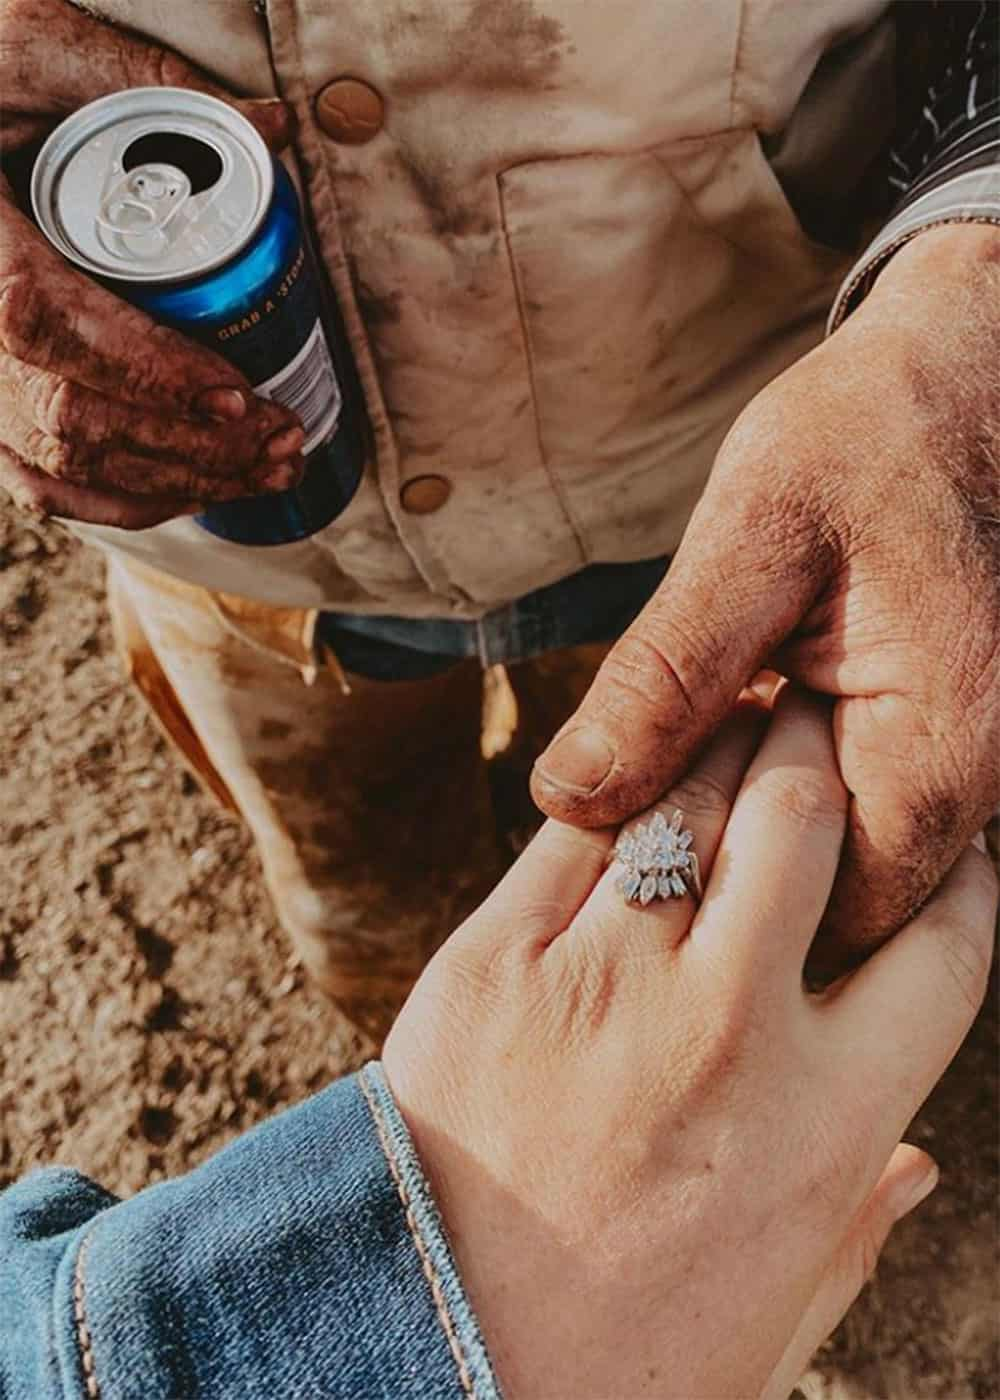 shaley ham engaged cowgirl magazine